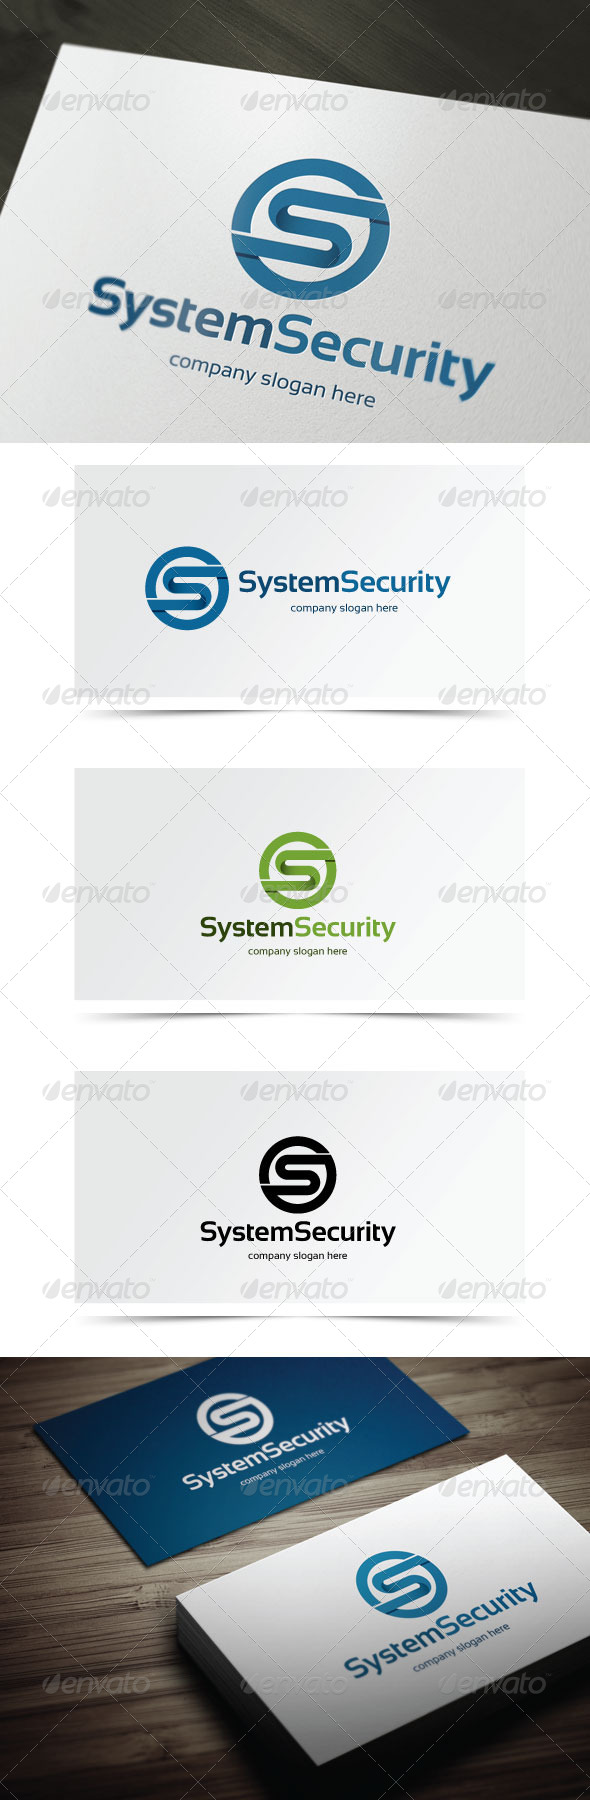 GraphicRiver System Security 5705961